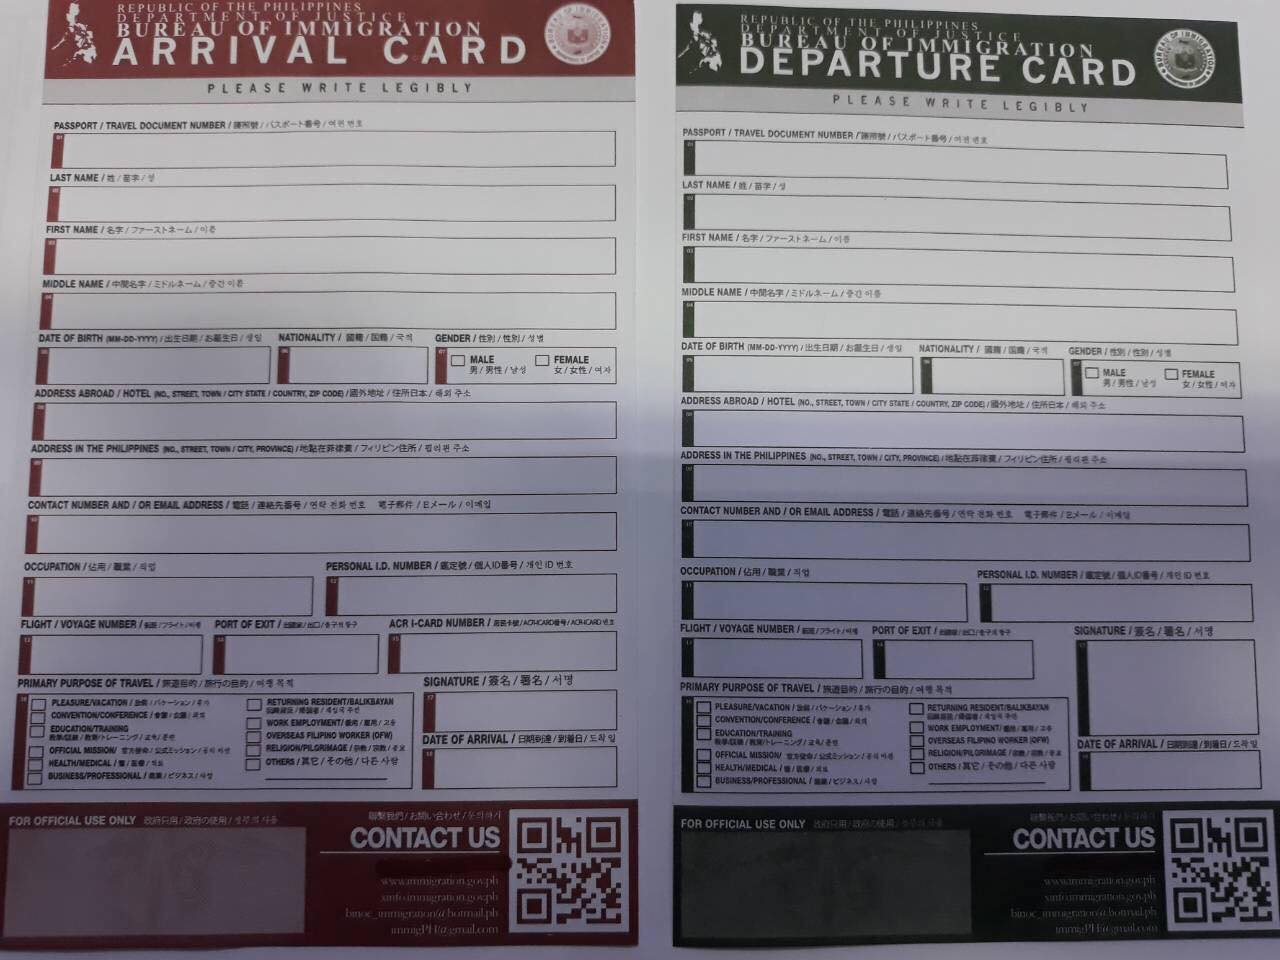 How to fill out Airport Departure Cards for Filipinos | The